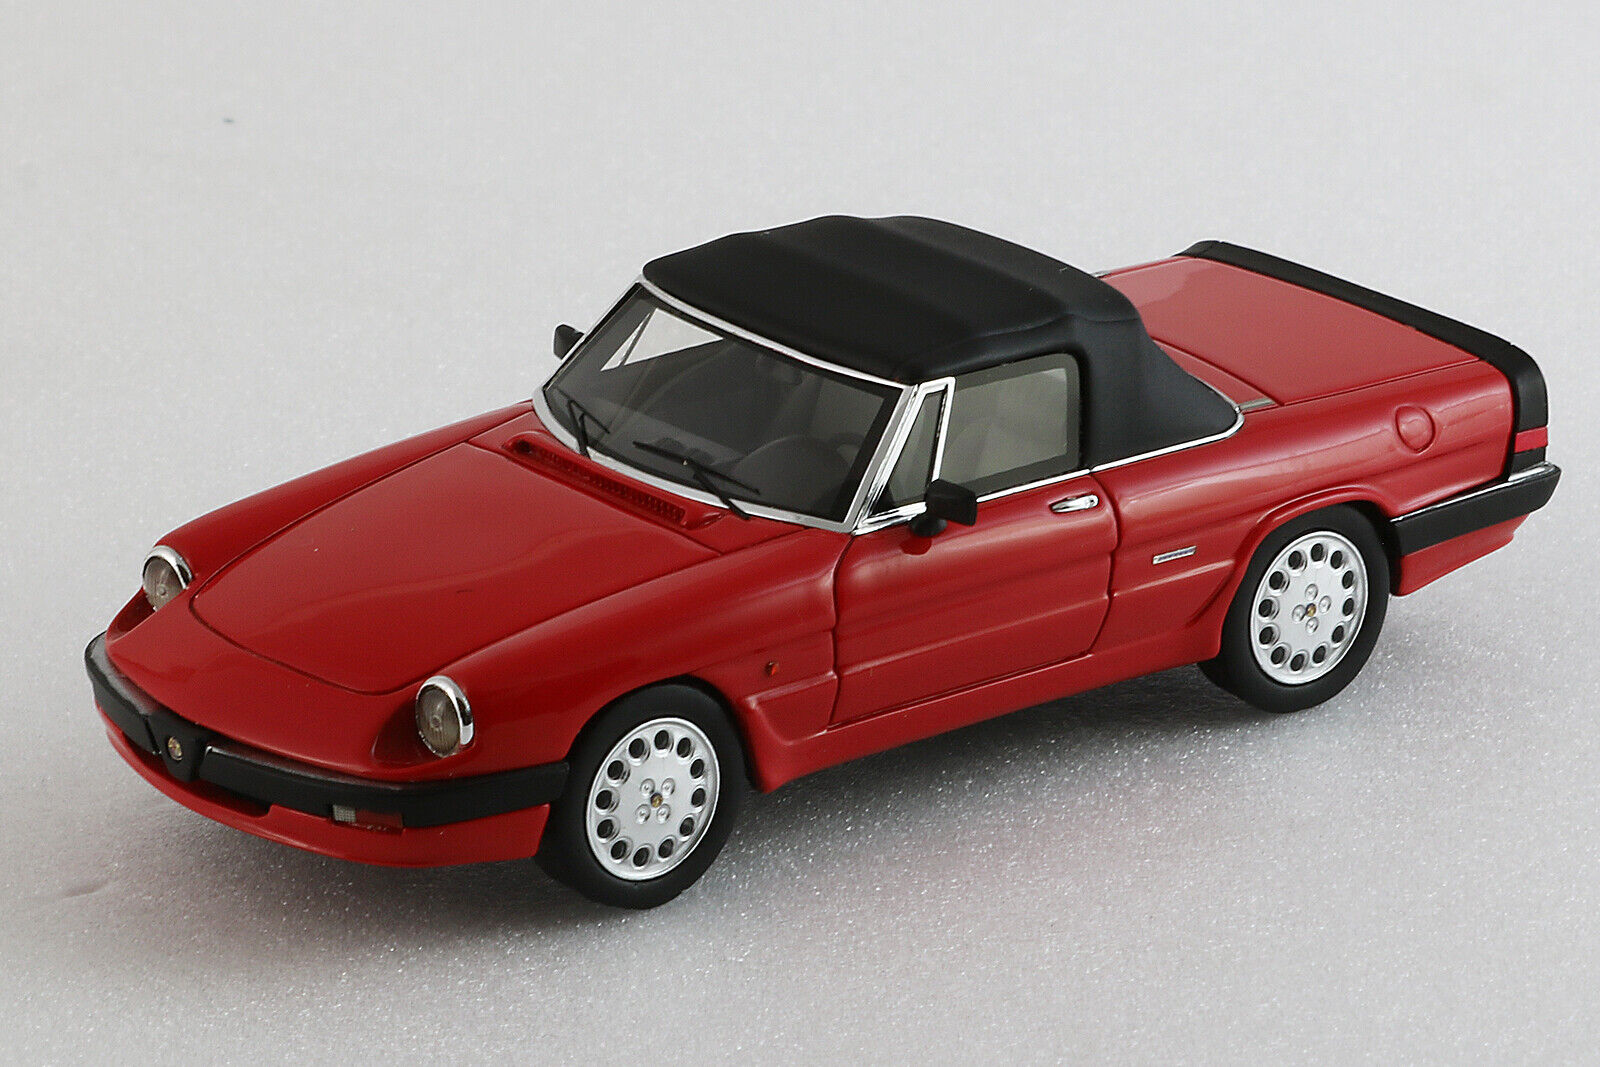 Alfa romeo spider 1986 3a serie closed - 1 43ème - red-pink milena